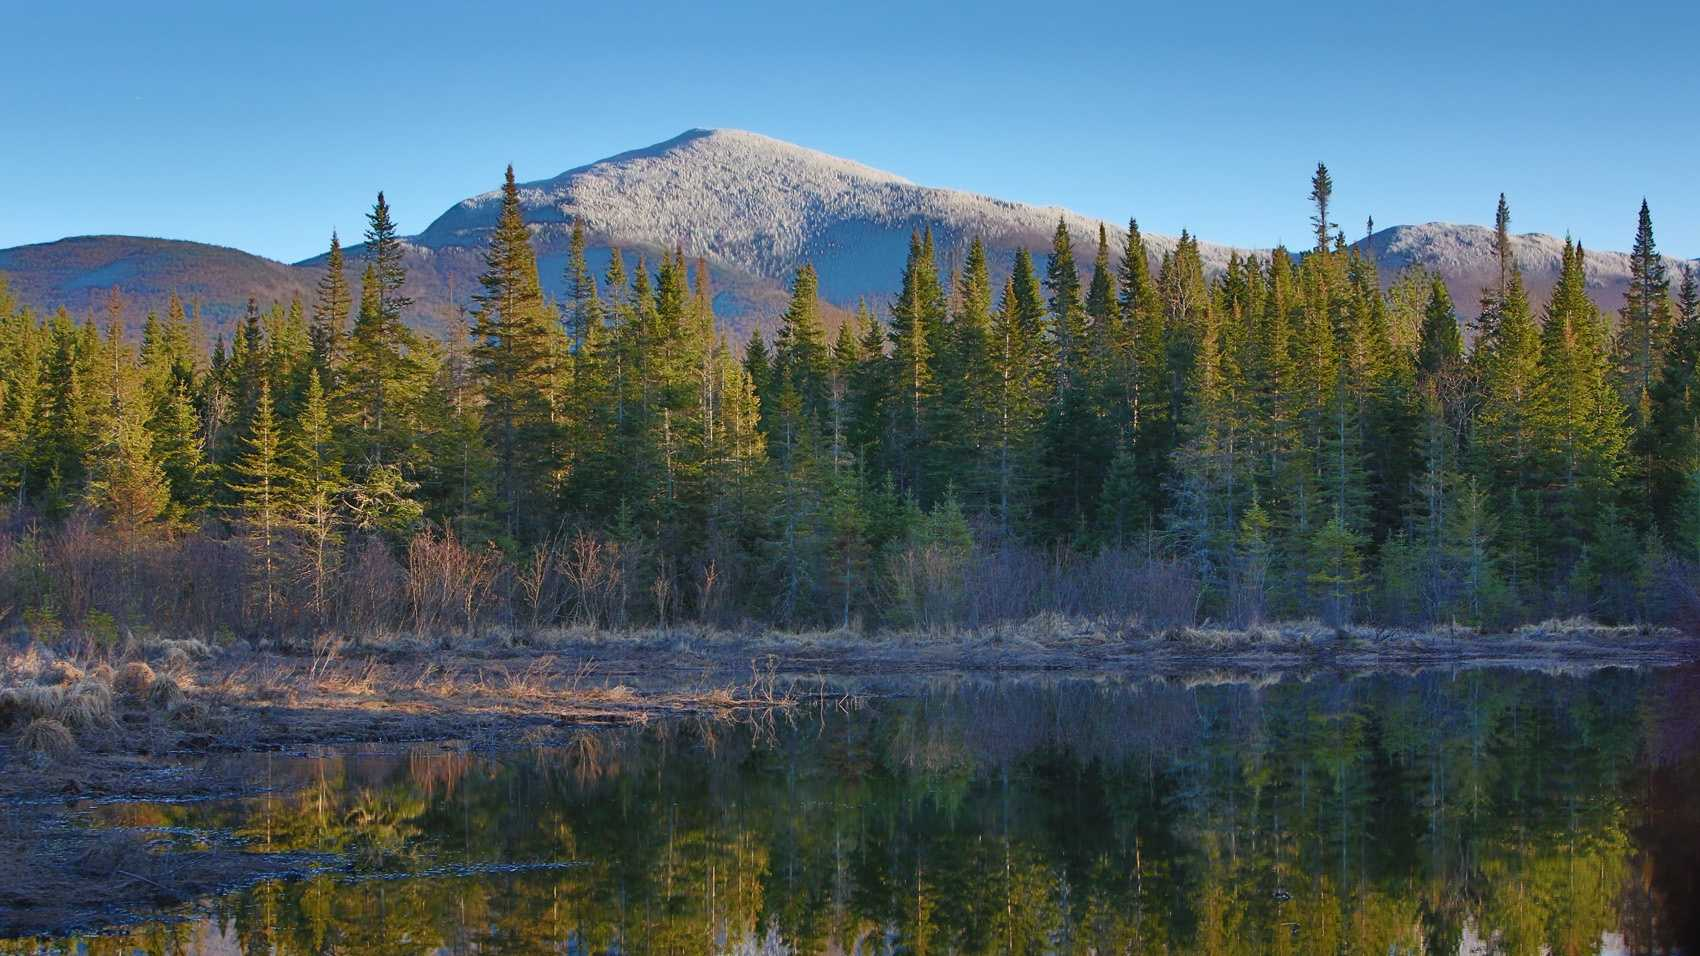 New Hampshire has so many outdoor activities to offer. See where your county ranks in terms of air quality, weather and access to things like parks, forests and equipment rentals.For full methodology, visit Niche.com.